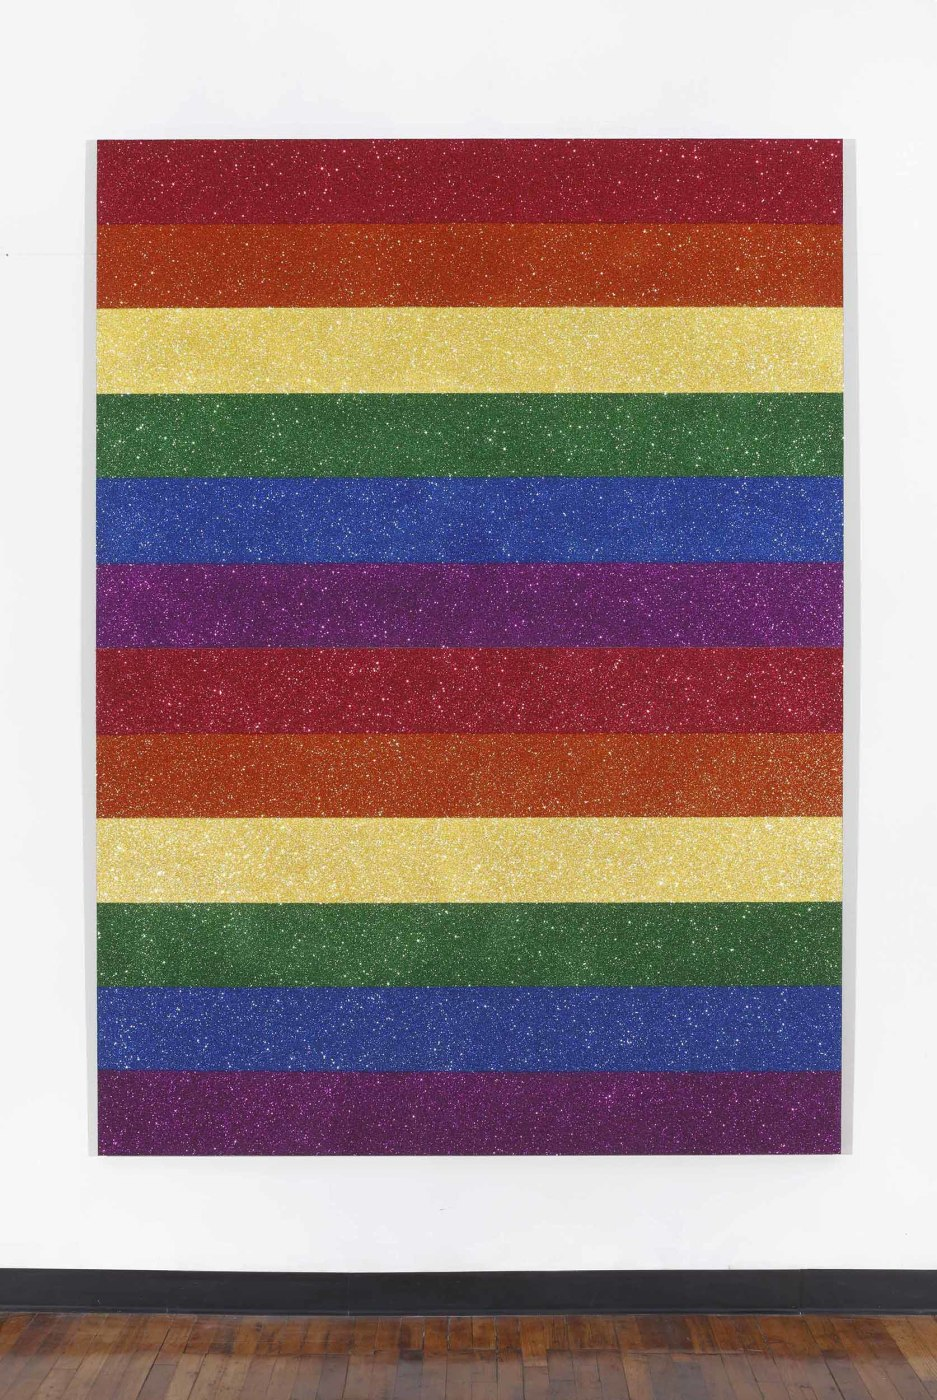 "<div class=""title""><em>Double Rainbow Flag for Jasper in the Style of the Artists Boyfriend</em>, 2013</div><div class=""signed_and_dated"">signed and dated on verso</div><div class=""medium"">glitter and enamel on canvas</div><div class=""dimensions"">249.6 x 183.5 cm<br />98 1/4 x 72 1/4 in.</div>"